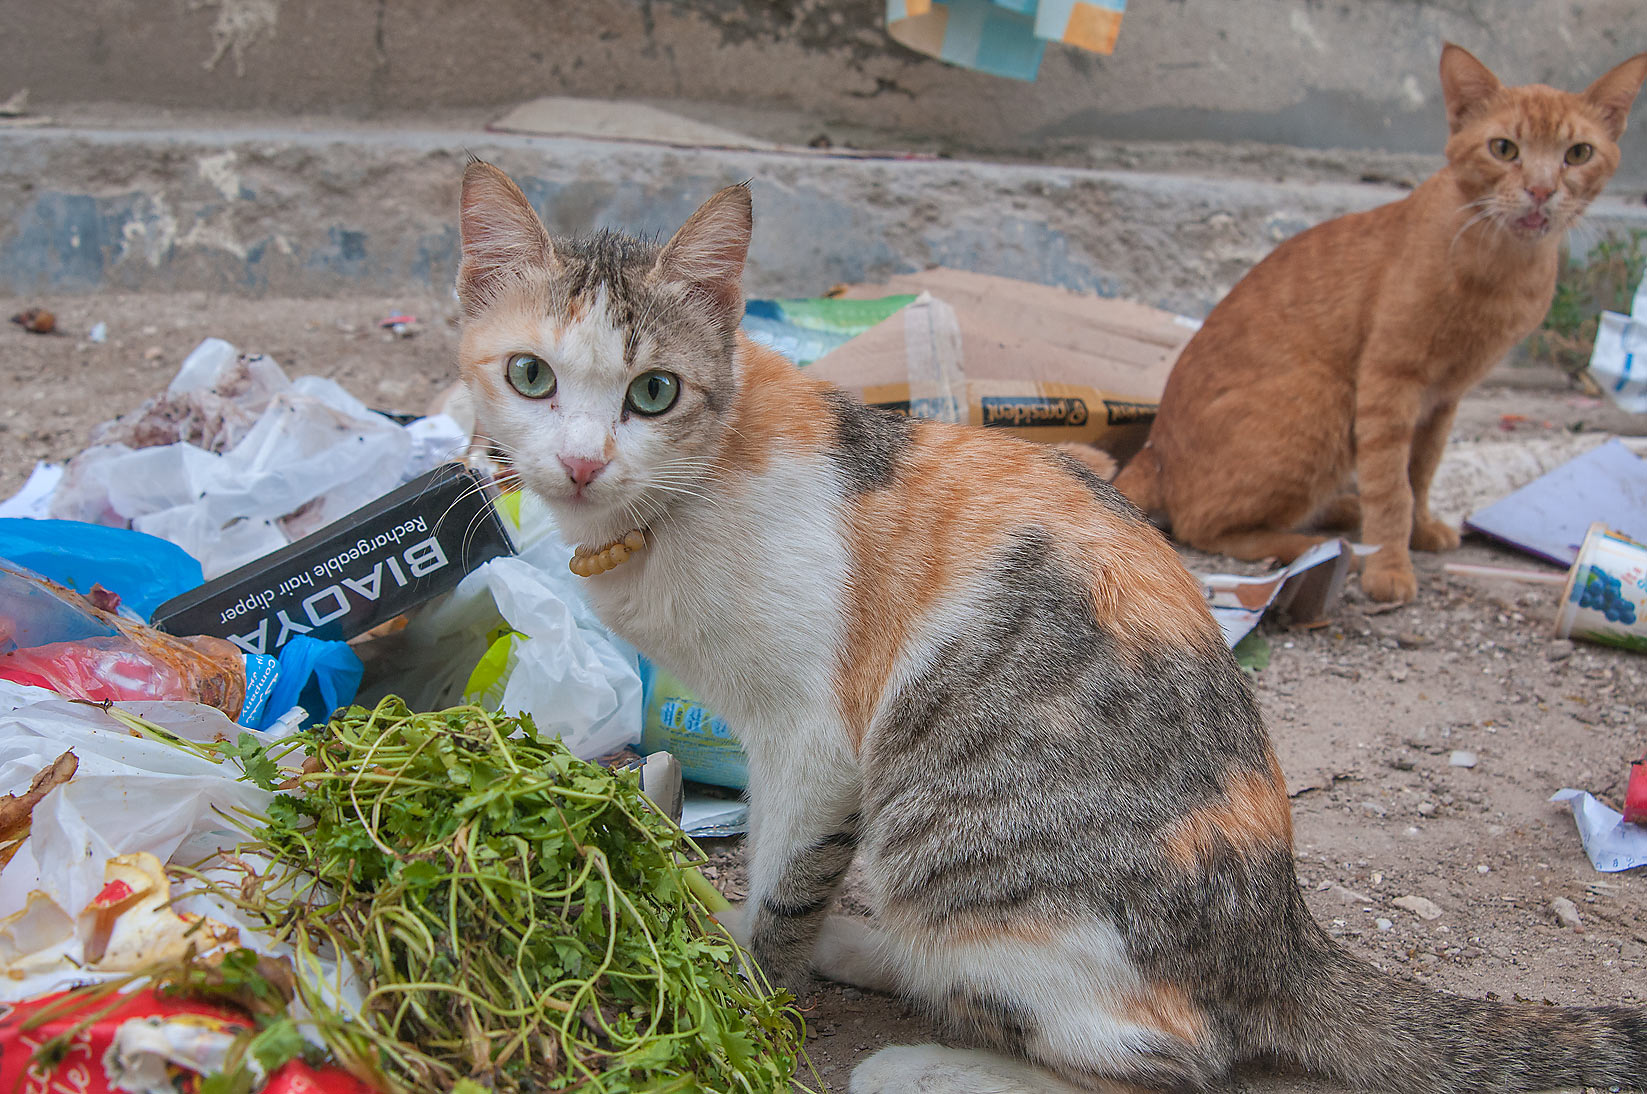 Cat with a bead necklace eating vegetable salad for breakfast, Musheirib area. Doha, Qatar